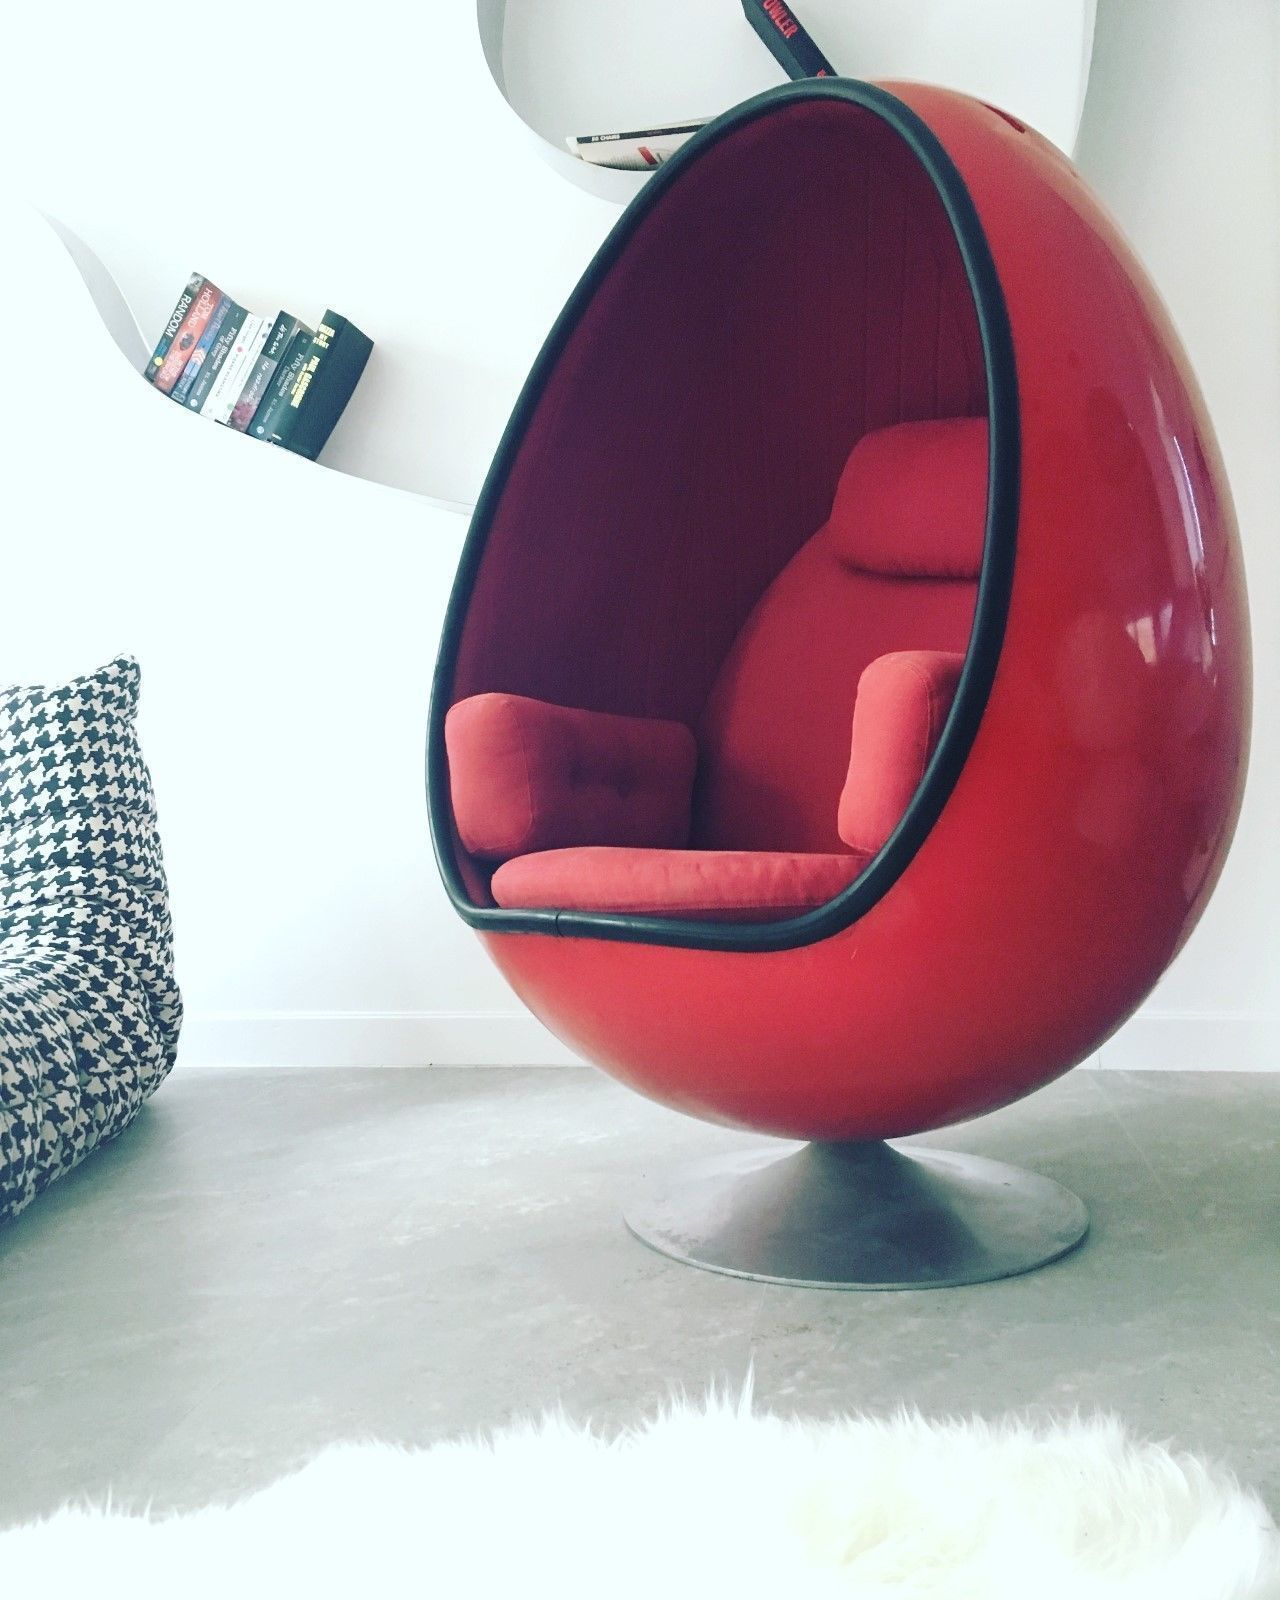 Incredible Vintage Ovalia Egg Chair By Thor Larsen For Torlan Staffanstorp 1968 Home Interior And Landscaping Synyenasavecom